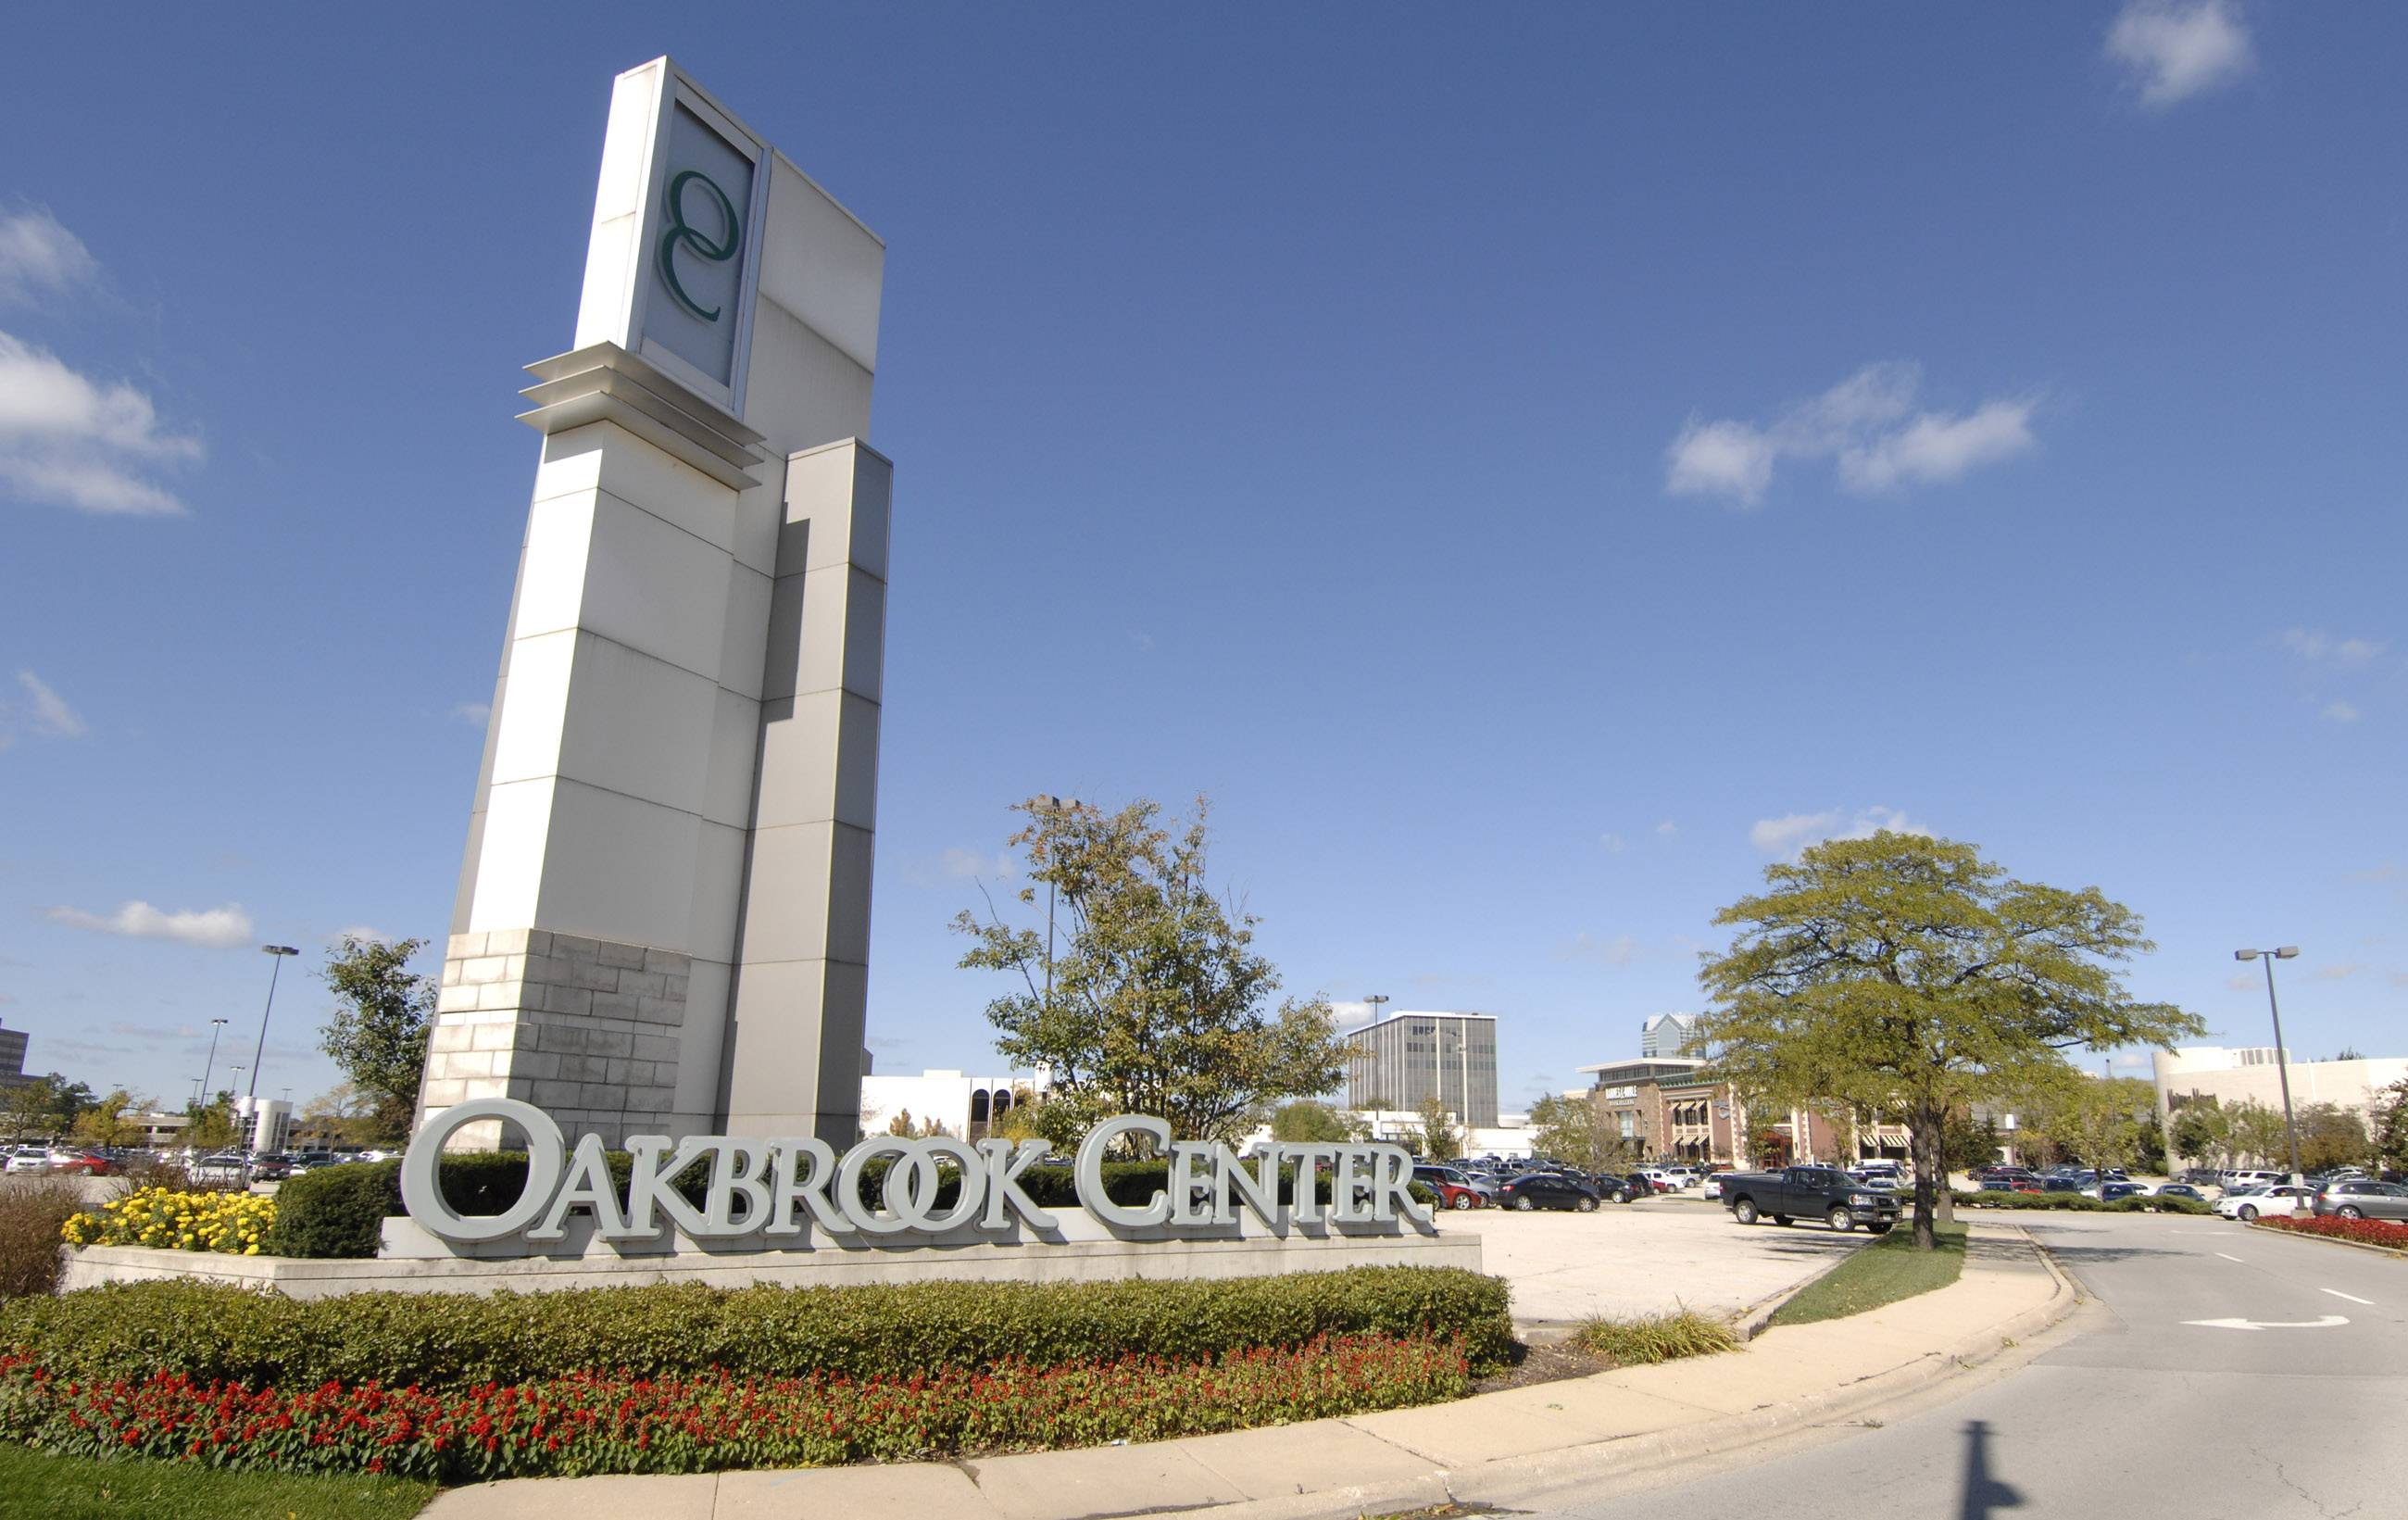 Oak Brook residents paid more than $67 million in income taxes in 2012, but received just 1.3 percent back from the state while other areas received far a greater percentage of what the workforce contributed.